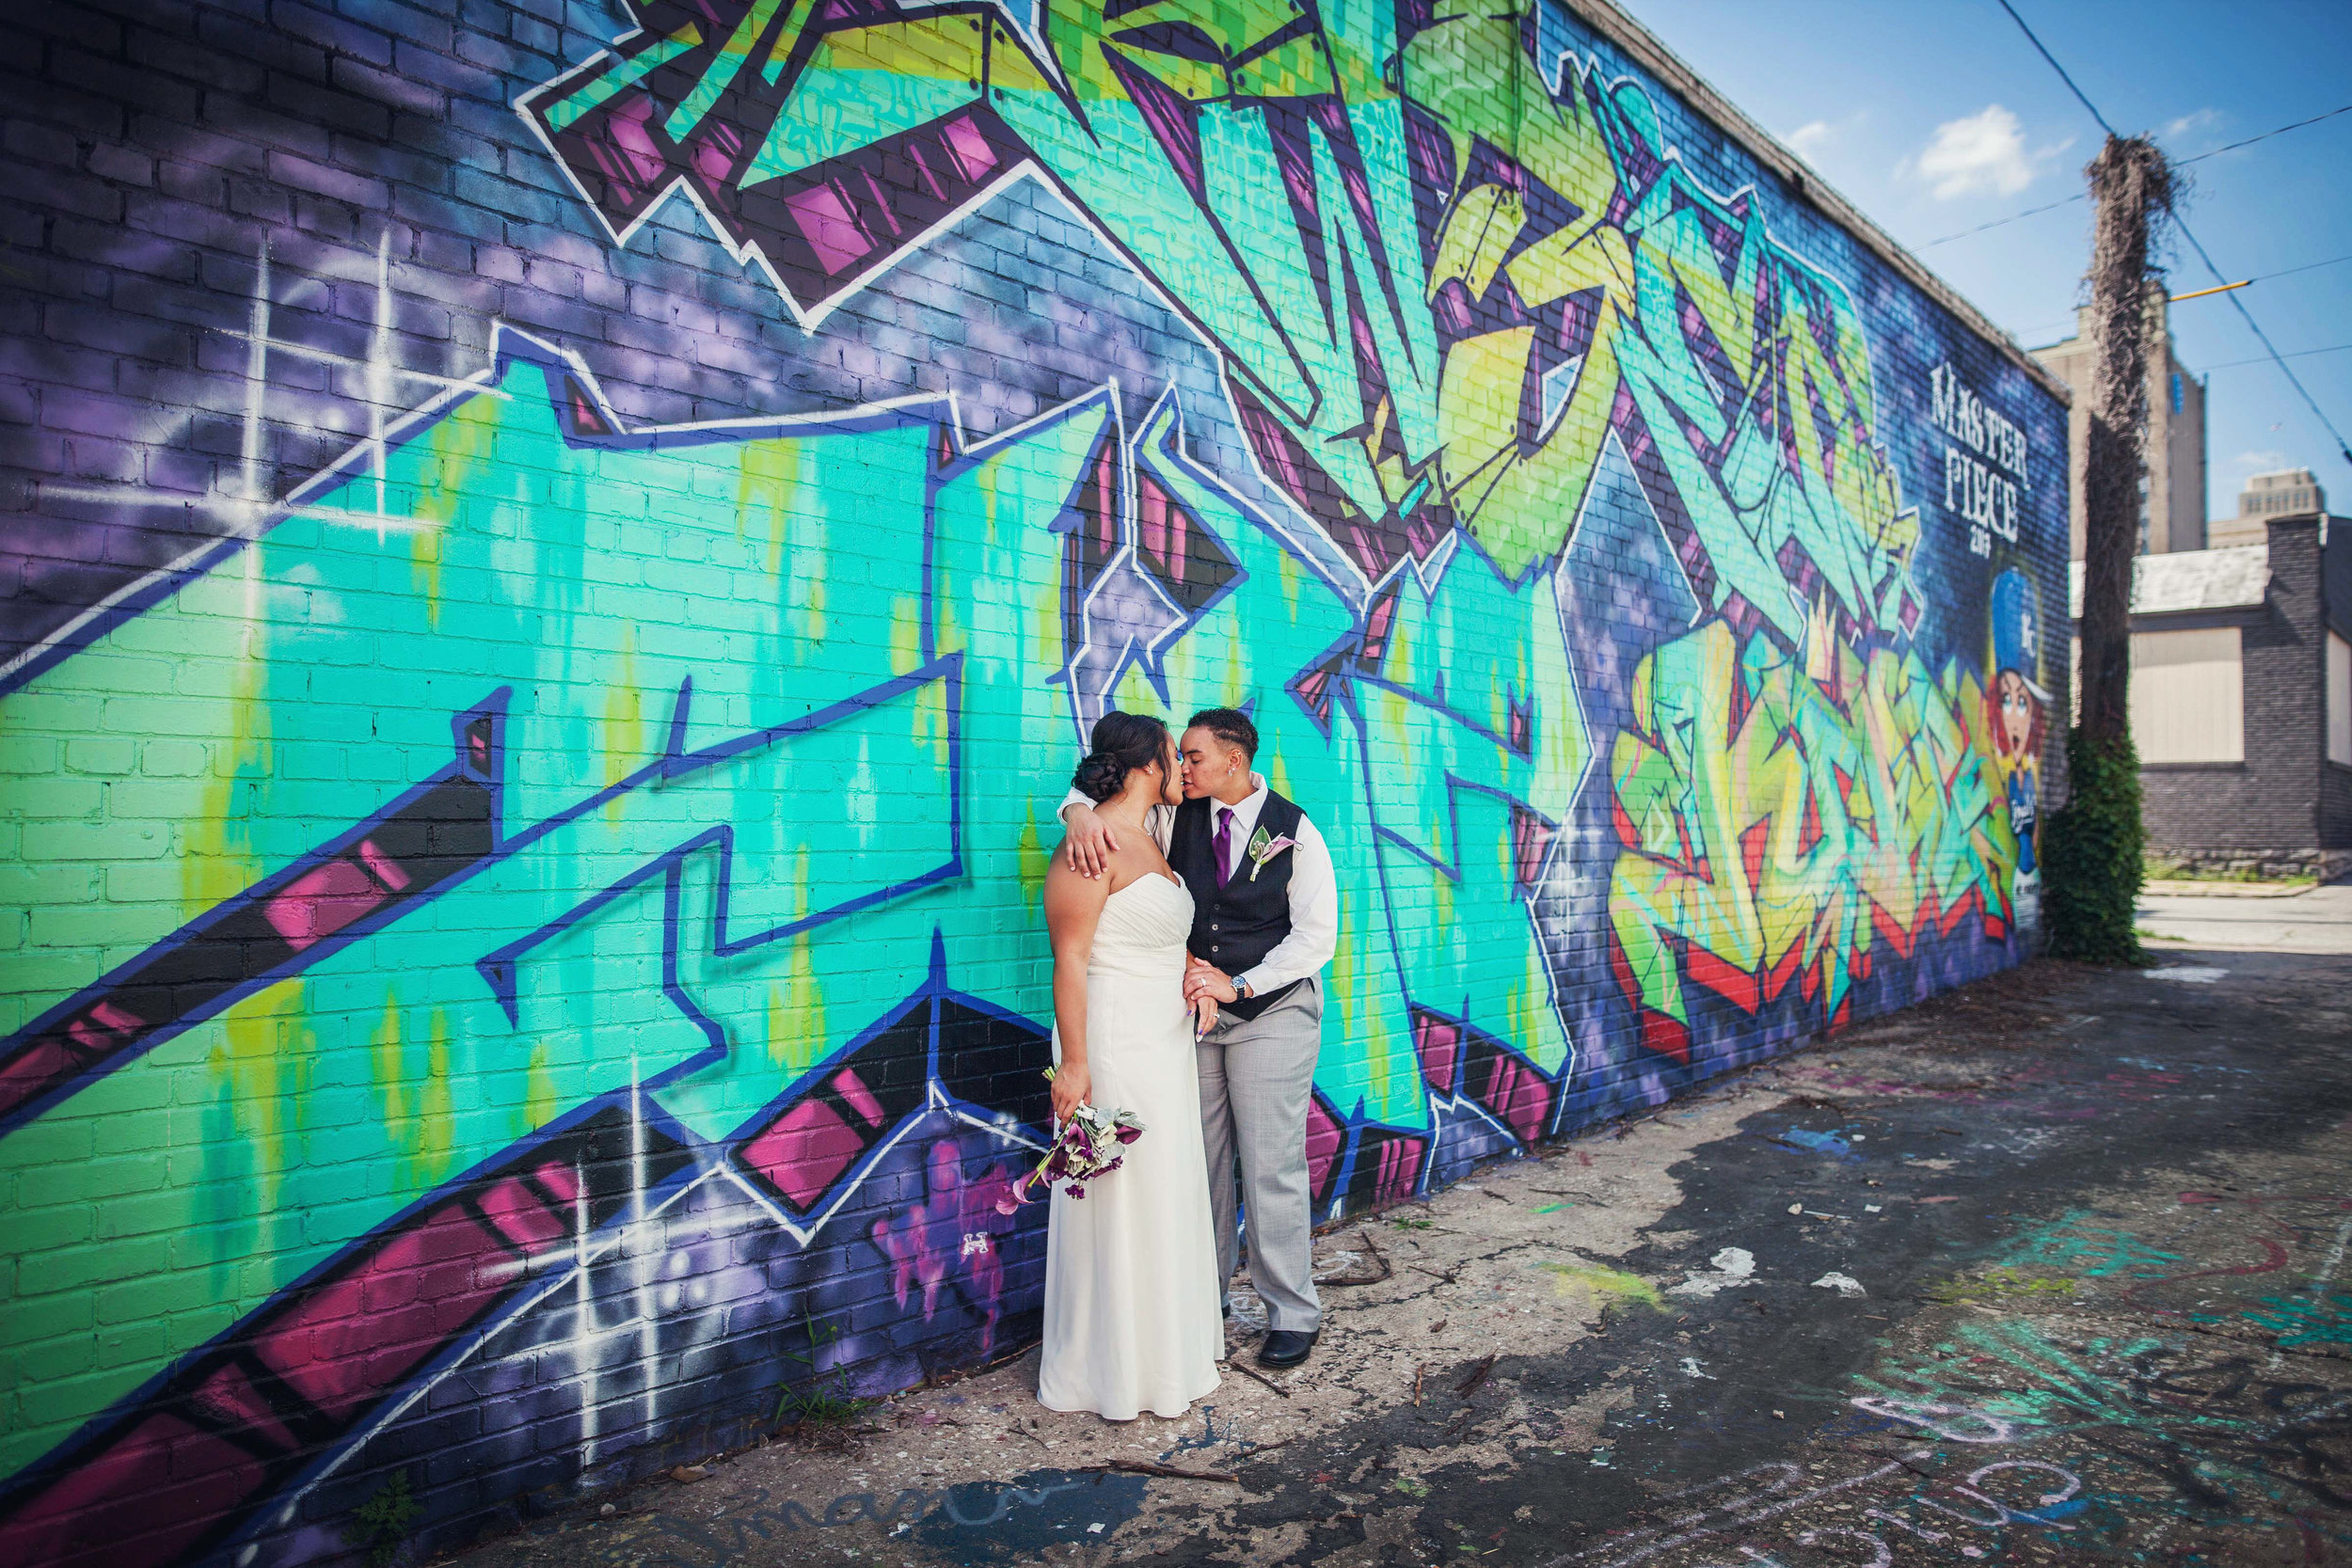 Kansas+City_Small+Wedding_Venue_Elope_Intimate_Ceremony_Constance & Carissa-322b.jpg